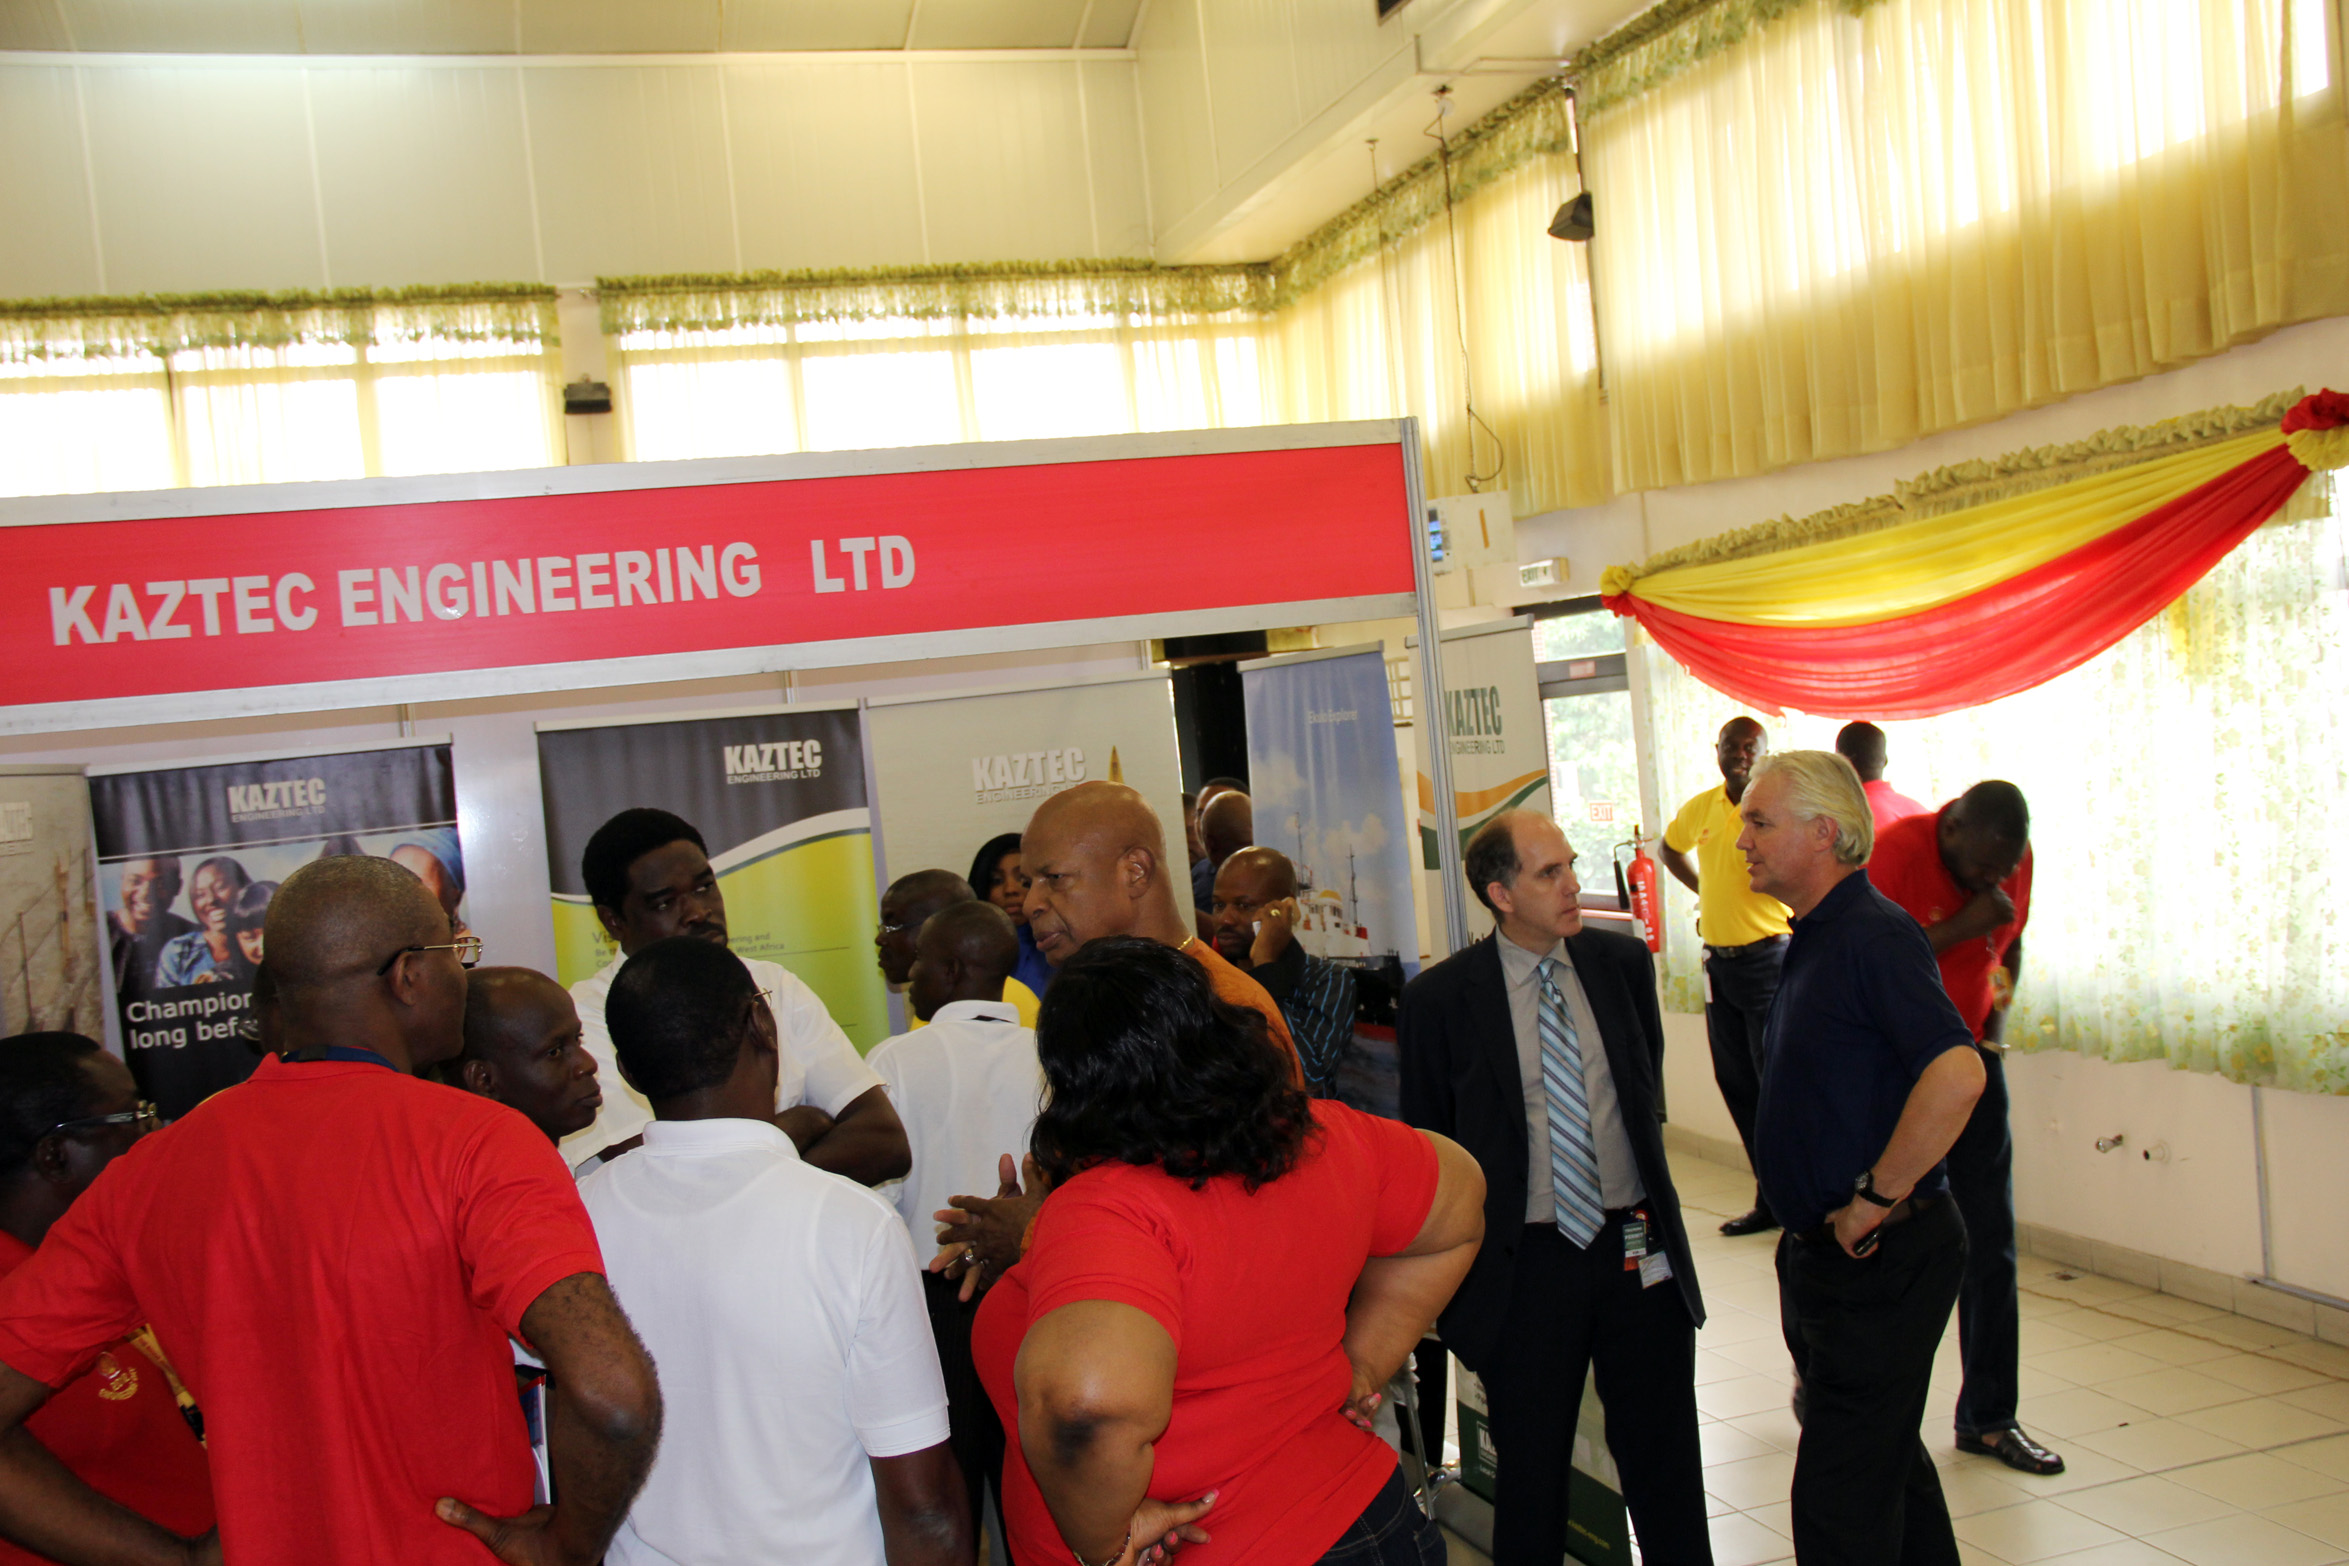 Kaztec Engineering Ltd. at Engineering Day 2012